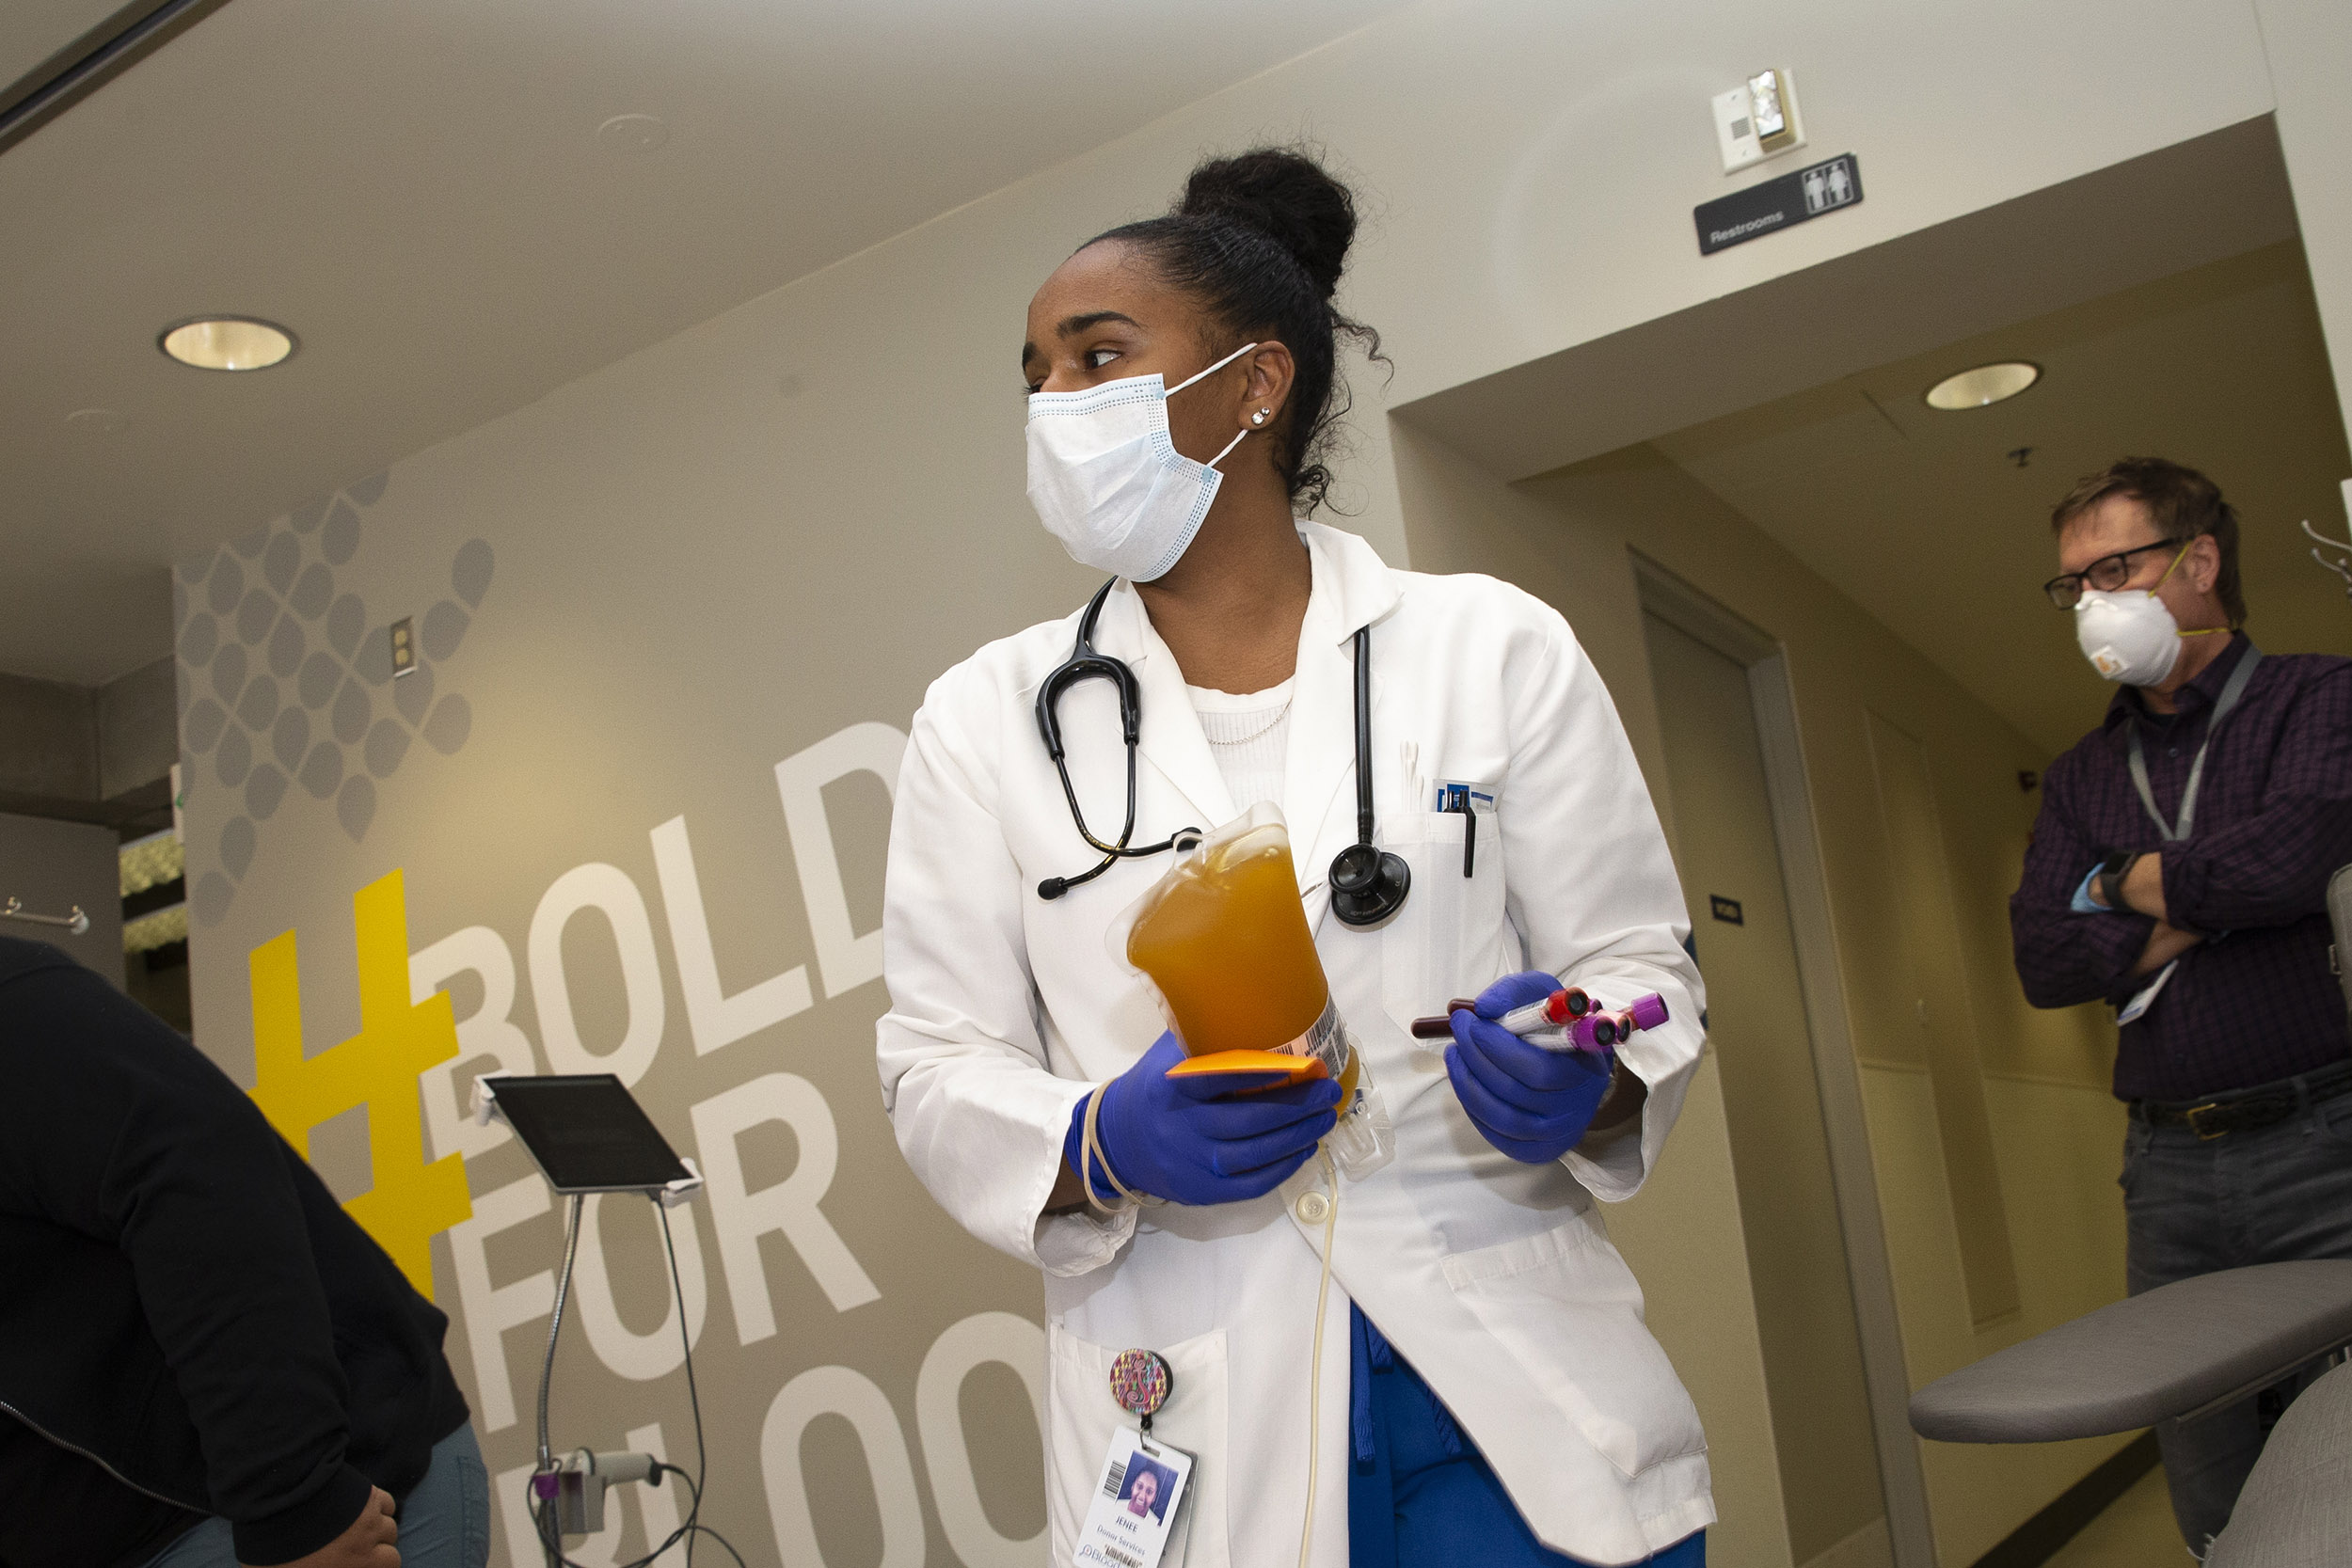 A medical worker carries Covid-19 convalescent plasma from a donor at Bloodworks Northwest on April 17, in Seattle, Washington.